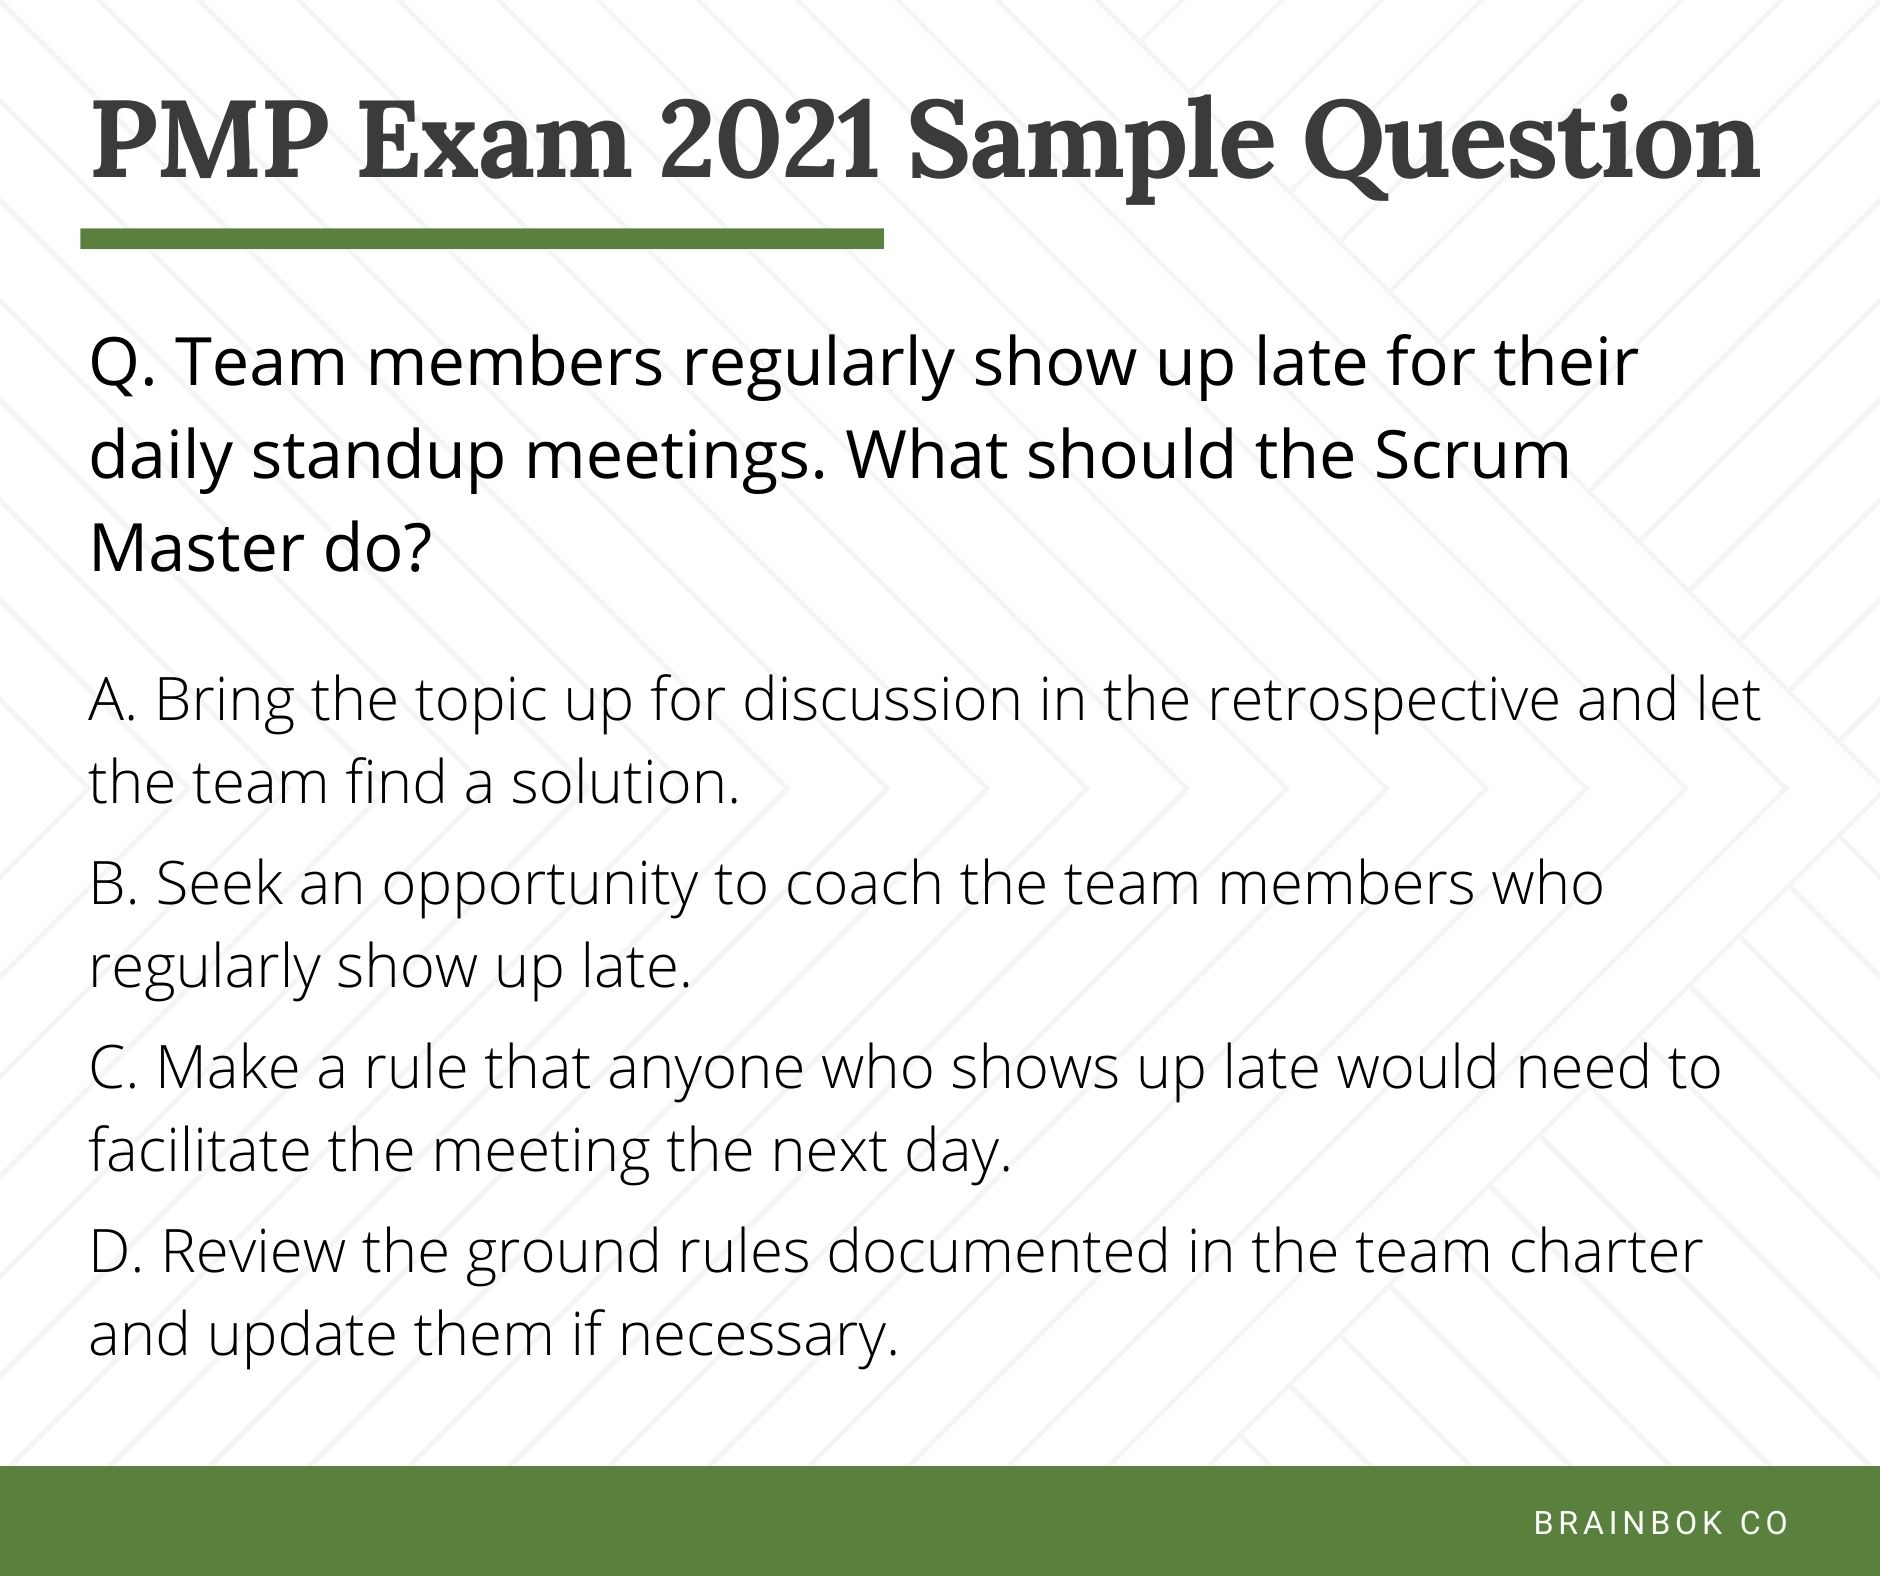 PMP Sample Question - Team members show up late for the daily standup